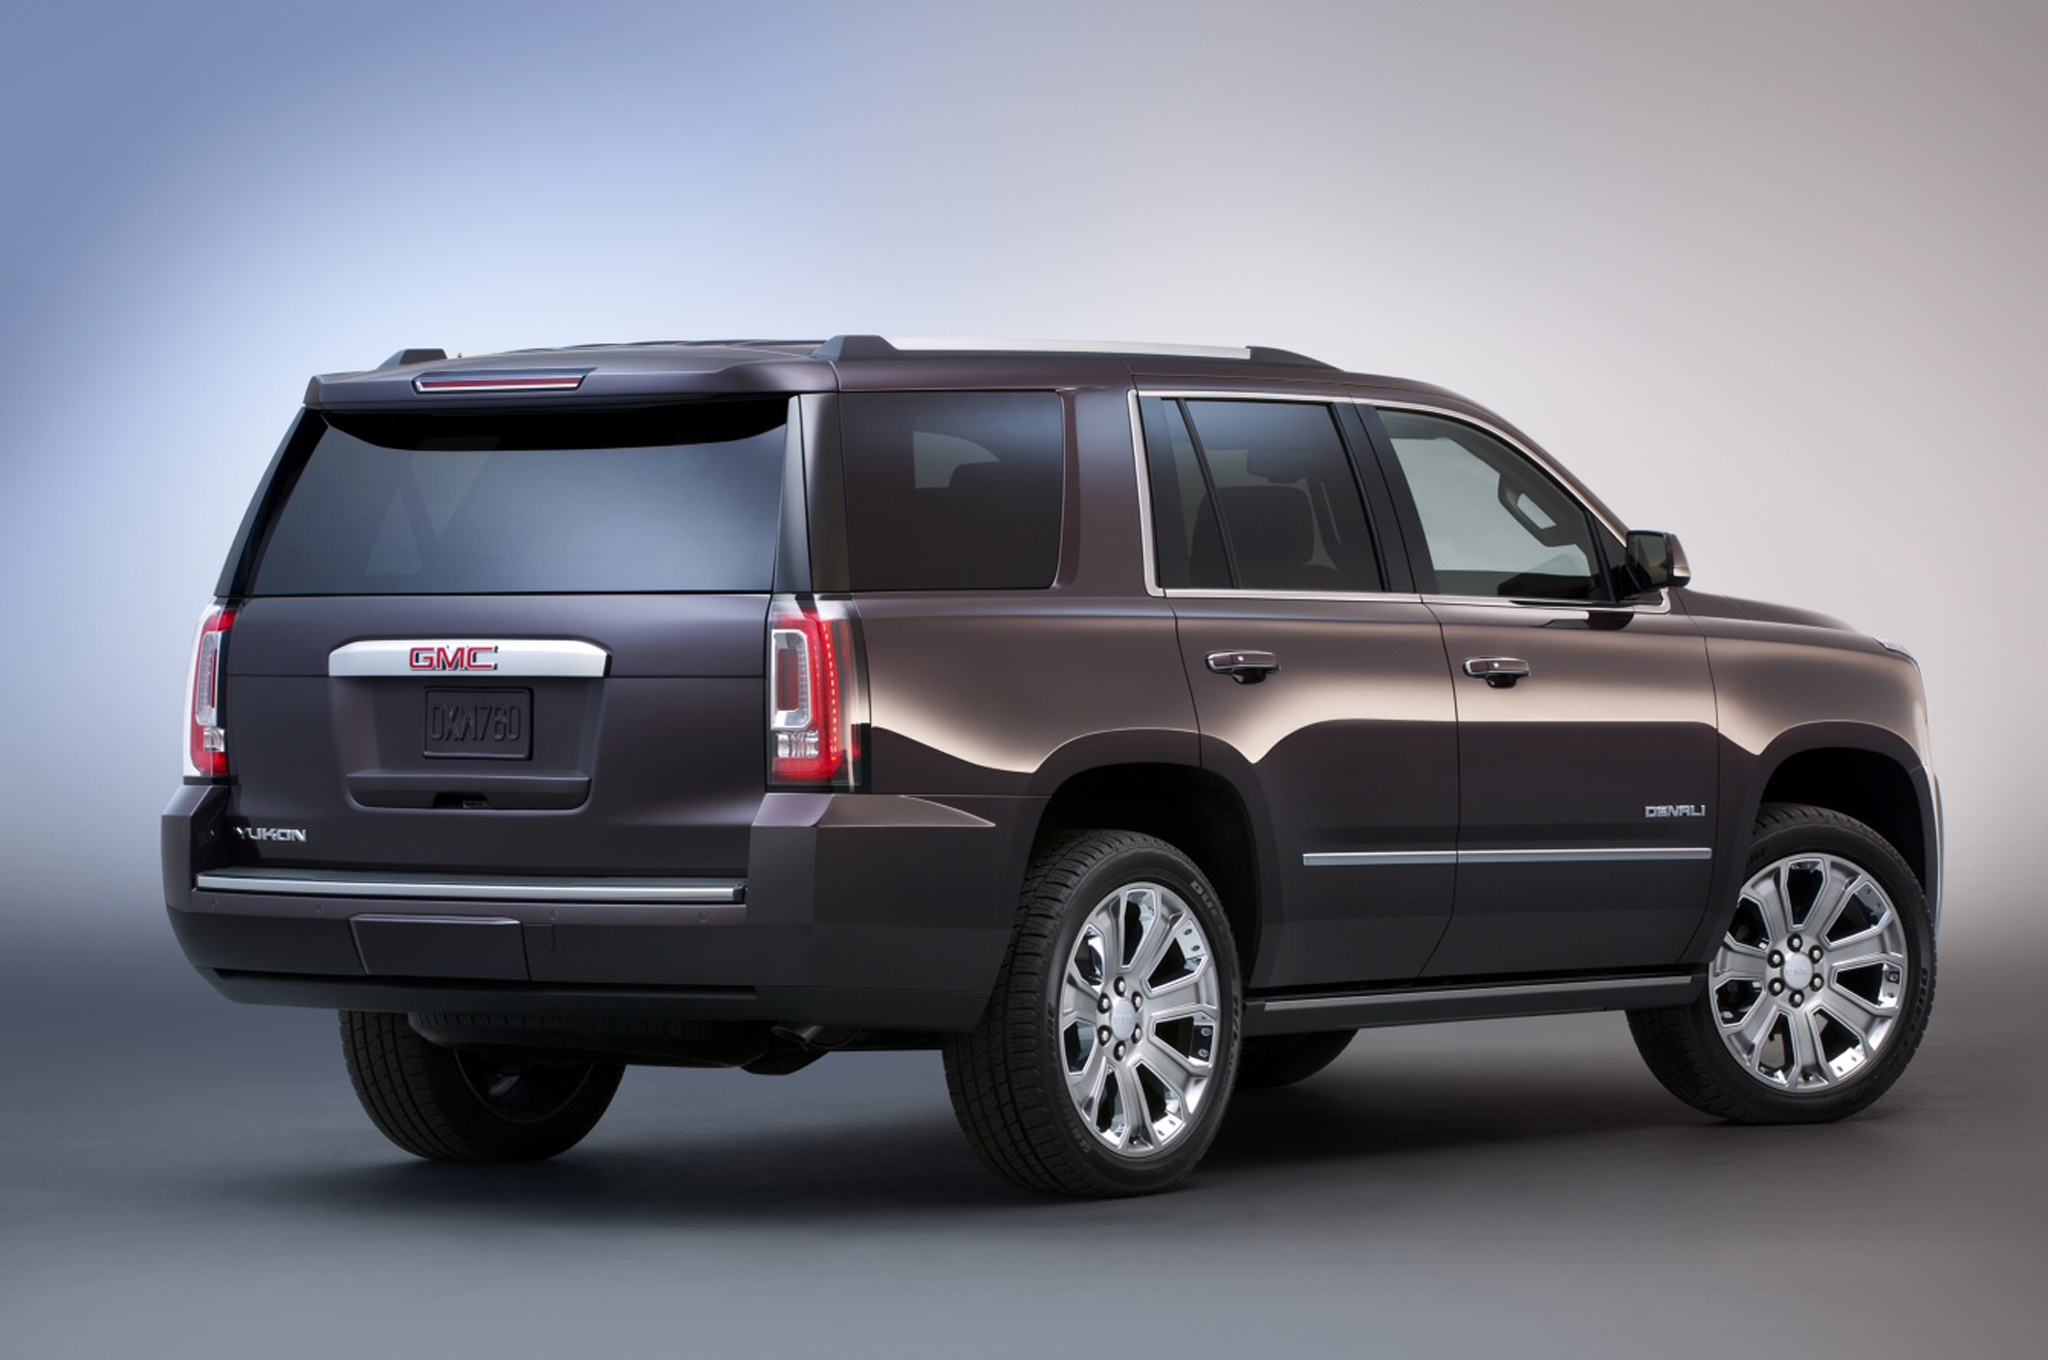 tahoe price chevrolet of reviews features interior photos